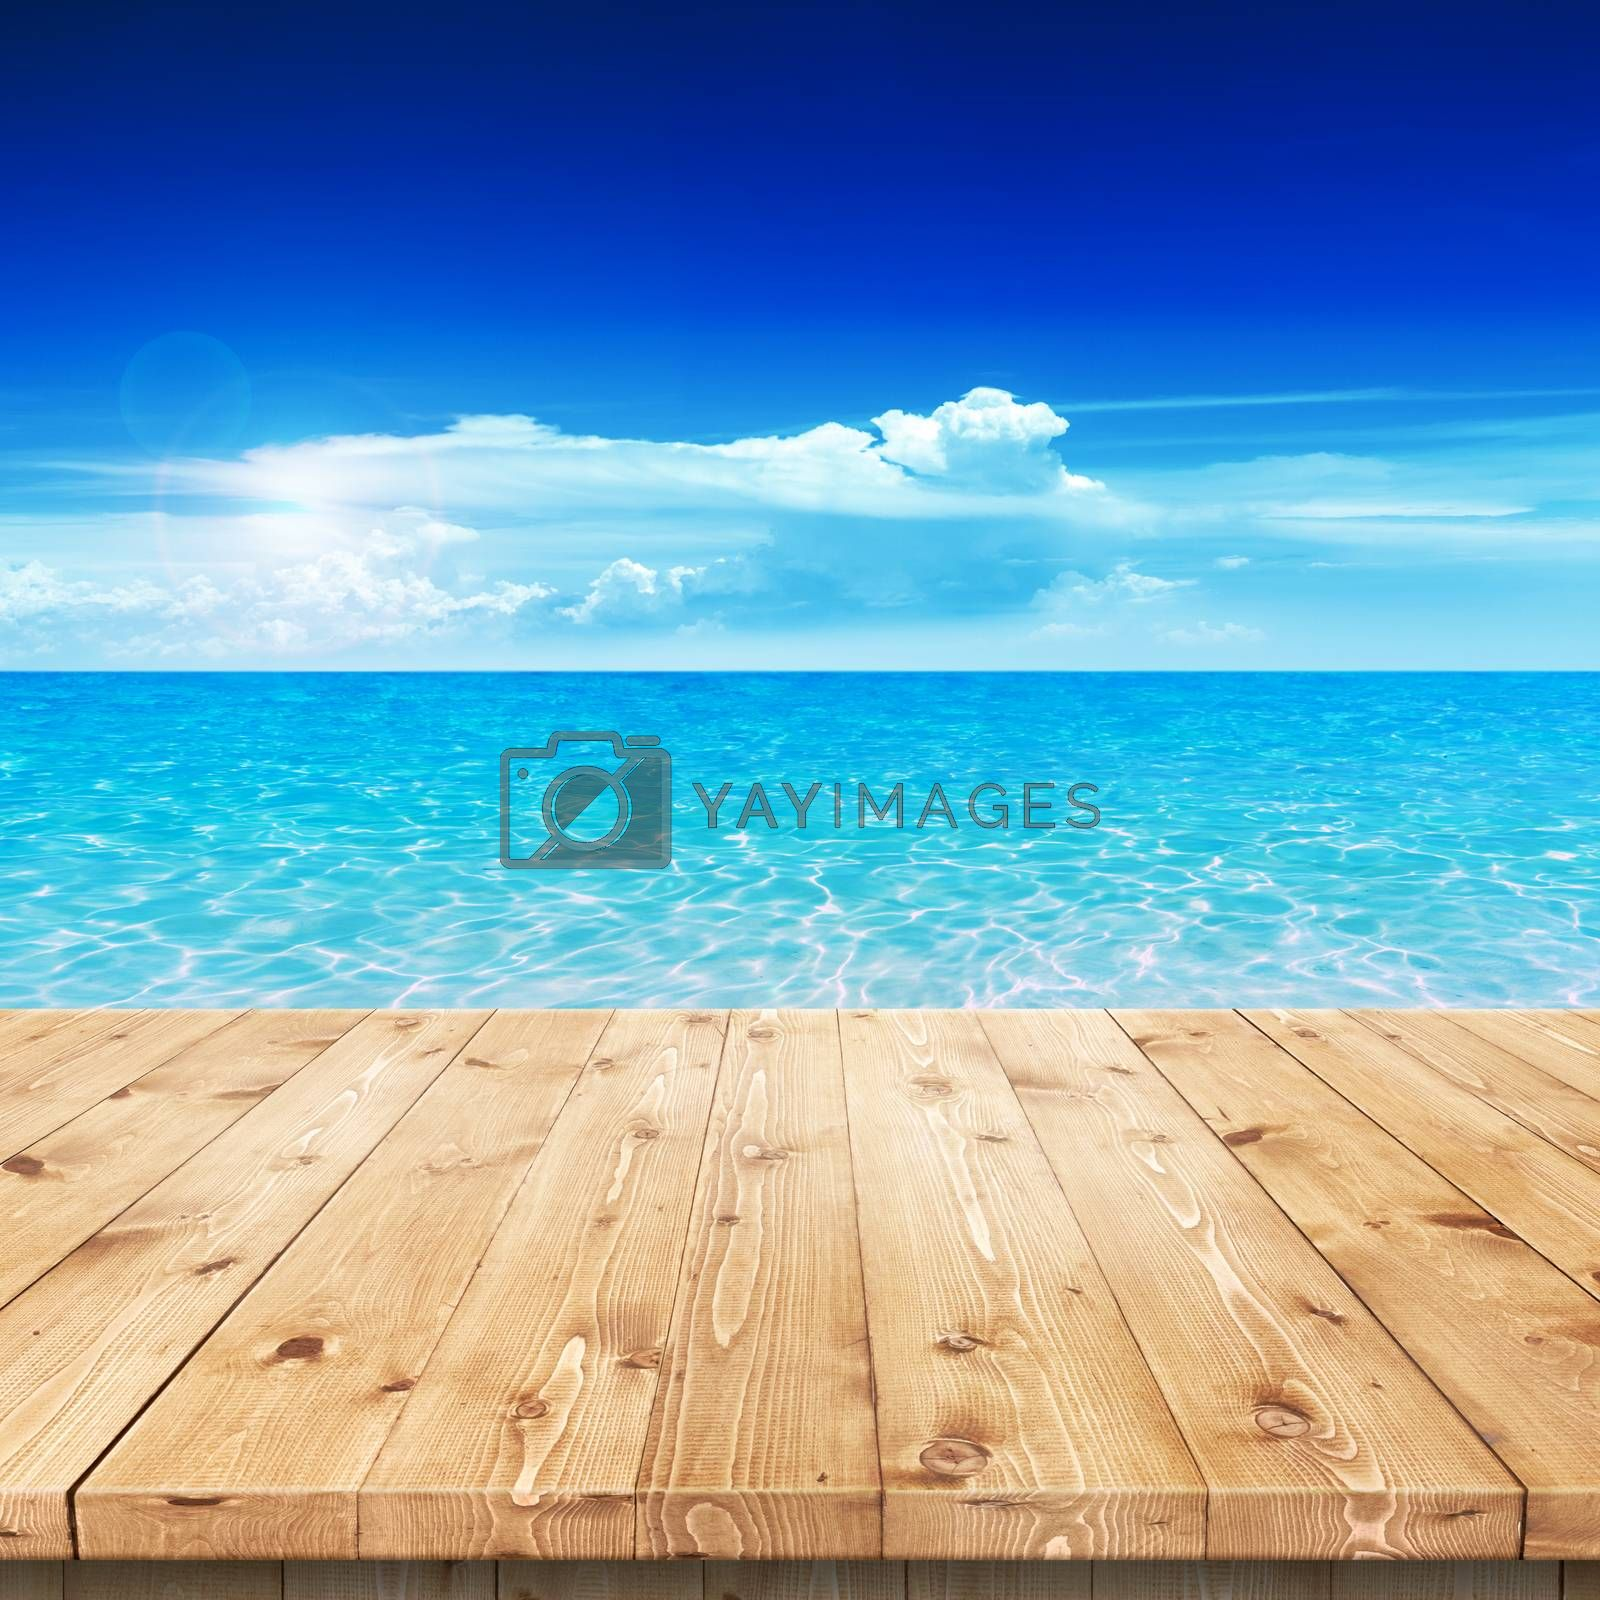 Royalty free image of Empty wooden table in a sun for product placement or montage by primopiano